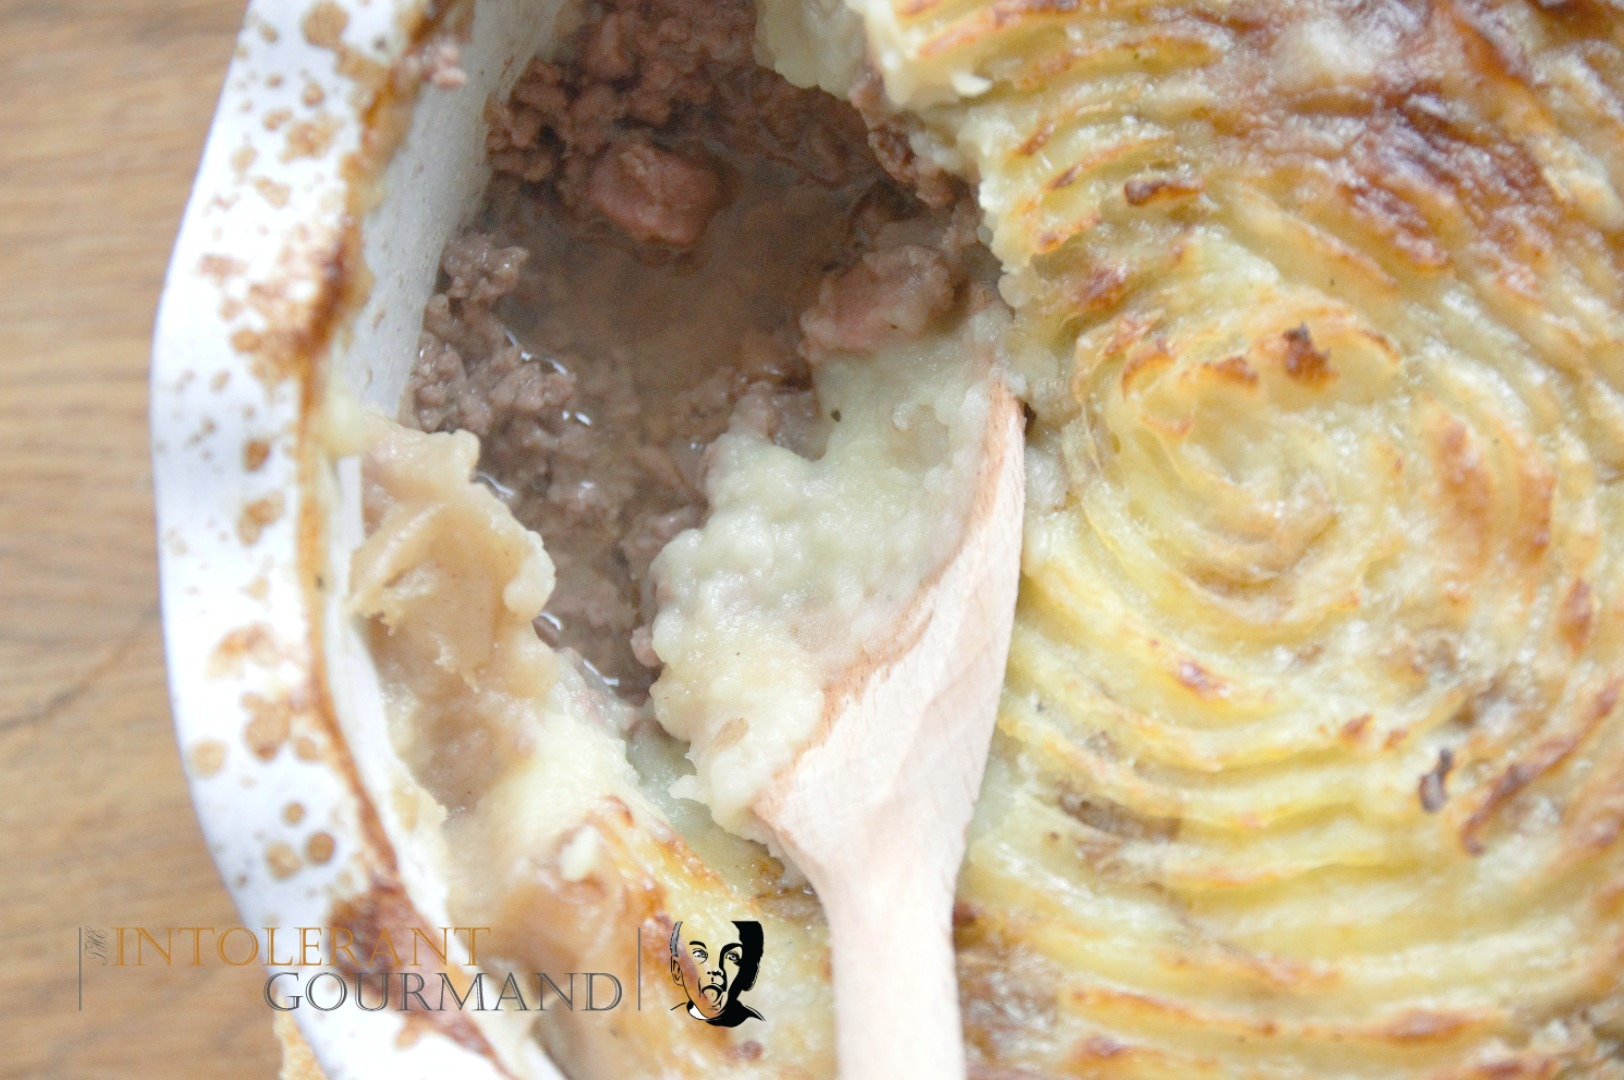 Cottage Pie - a delicious twist on the classic cottage pie, using bacon to add extra flavour! It's also gluten-free so fab for those with IBS or following a gluten-free diet due to allergies and intolerances! www.intolerantgourmand.com